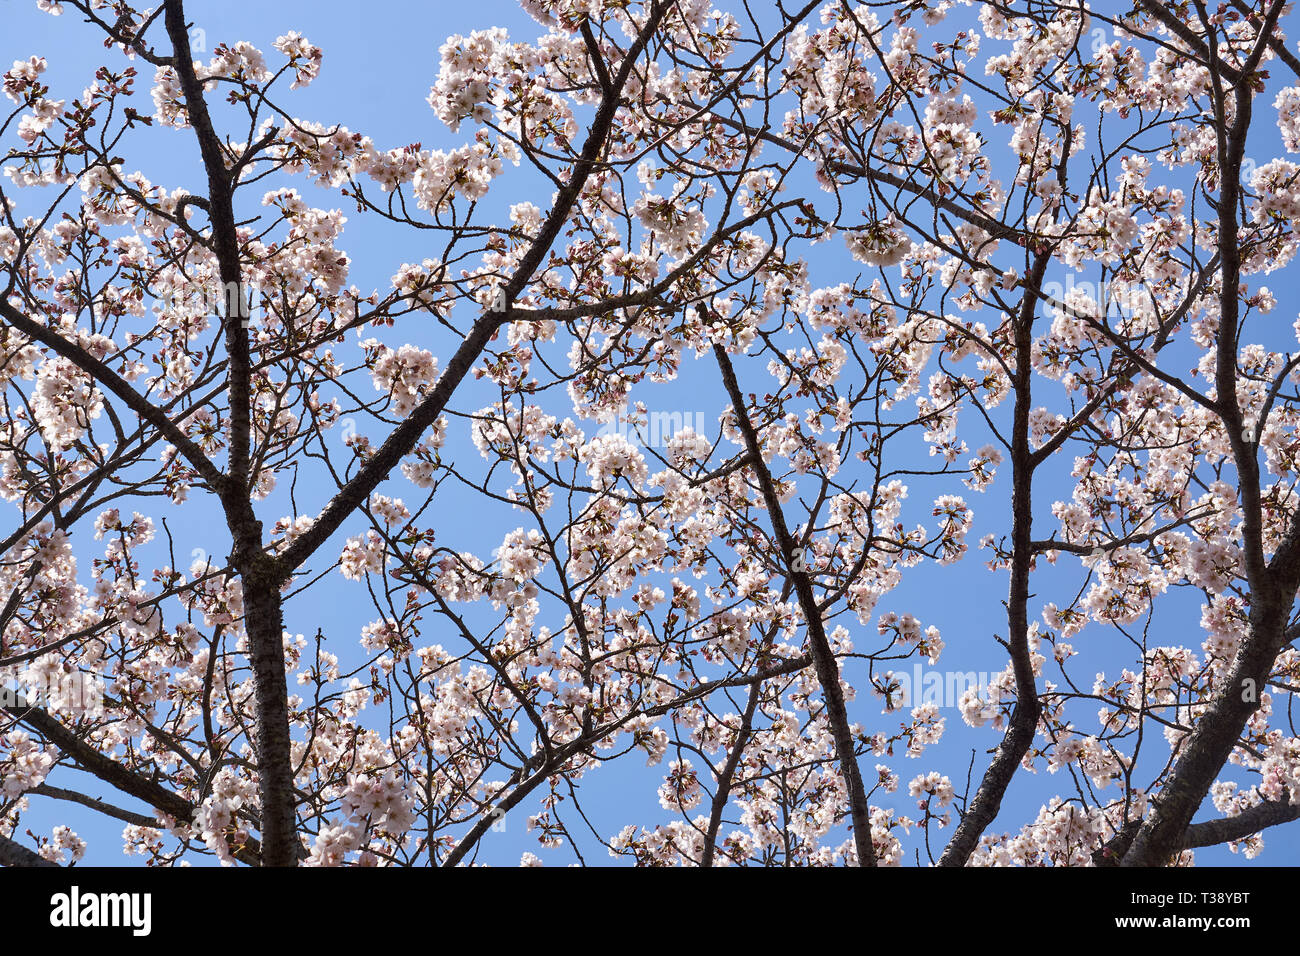 Cherry Blossom Tree Silhouette High Resolution Stock Photography And Images Alamy